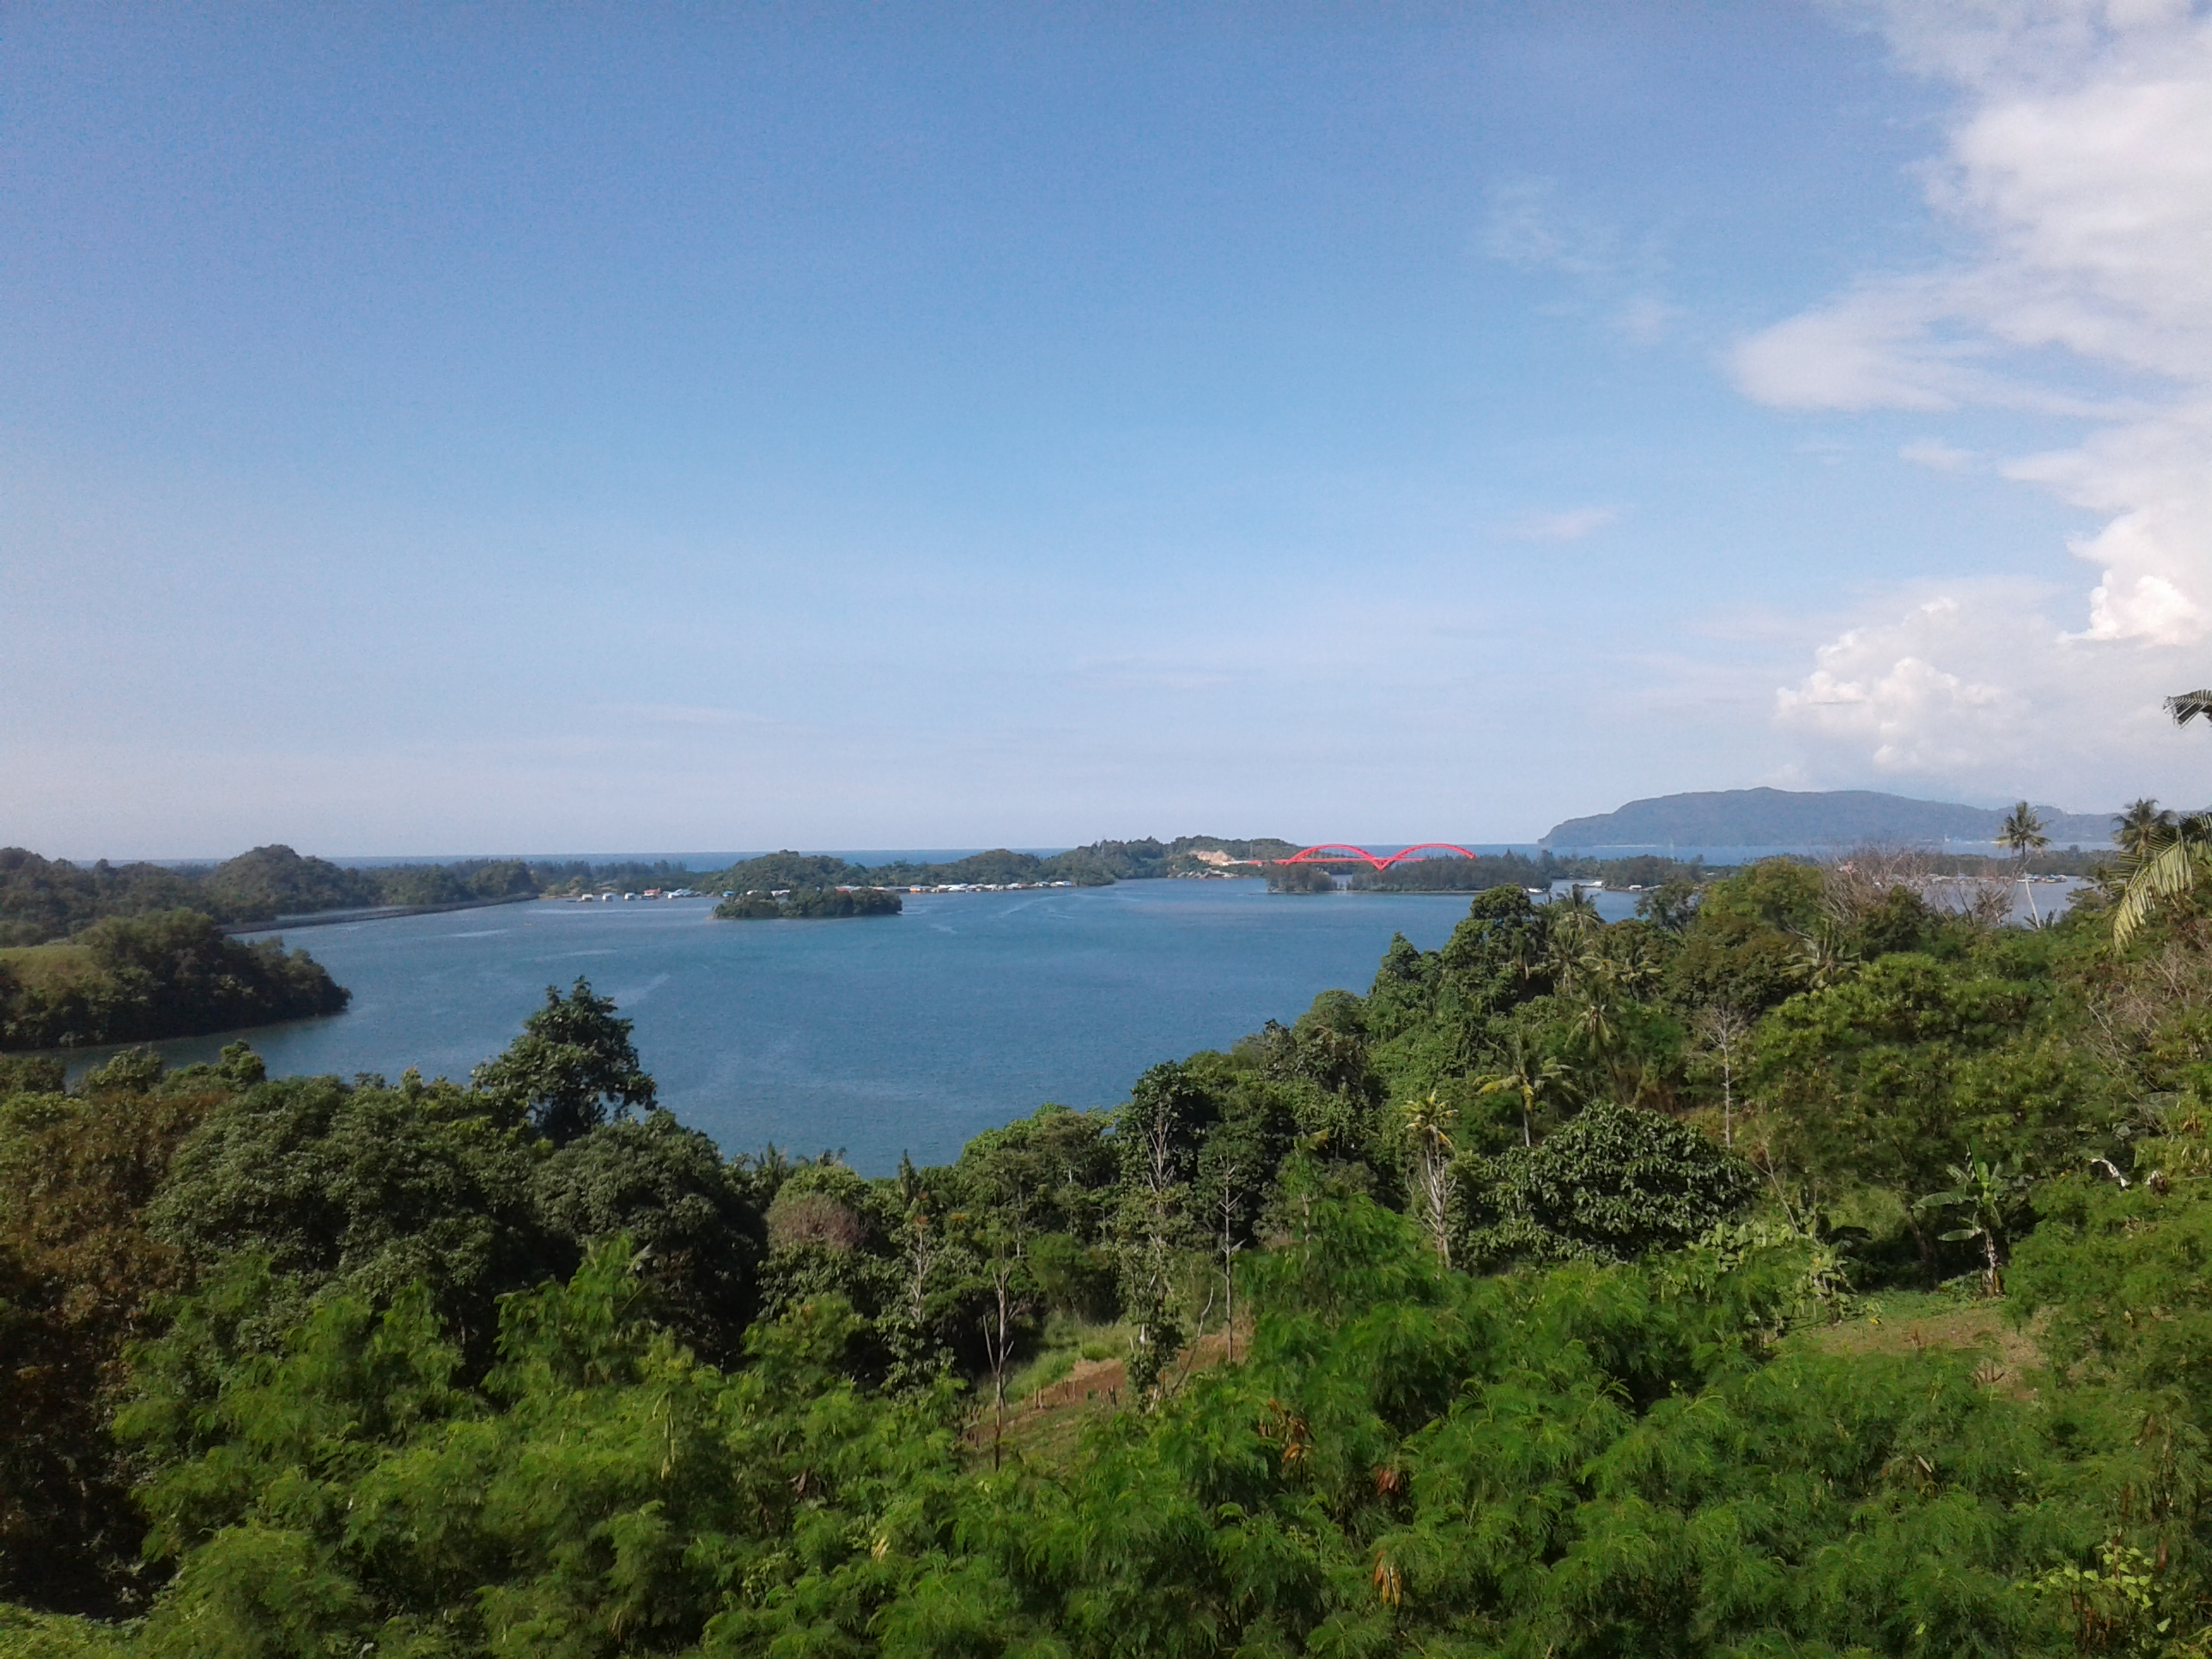 View of bay at Yos Sudarso Island on a clear day.